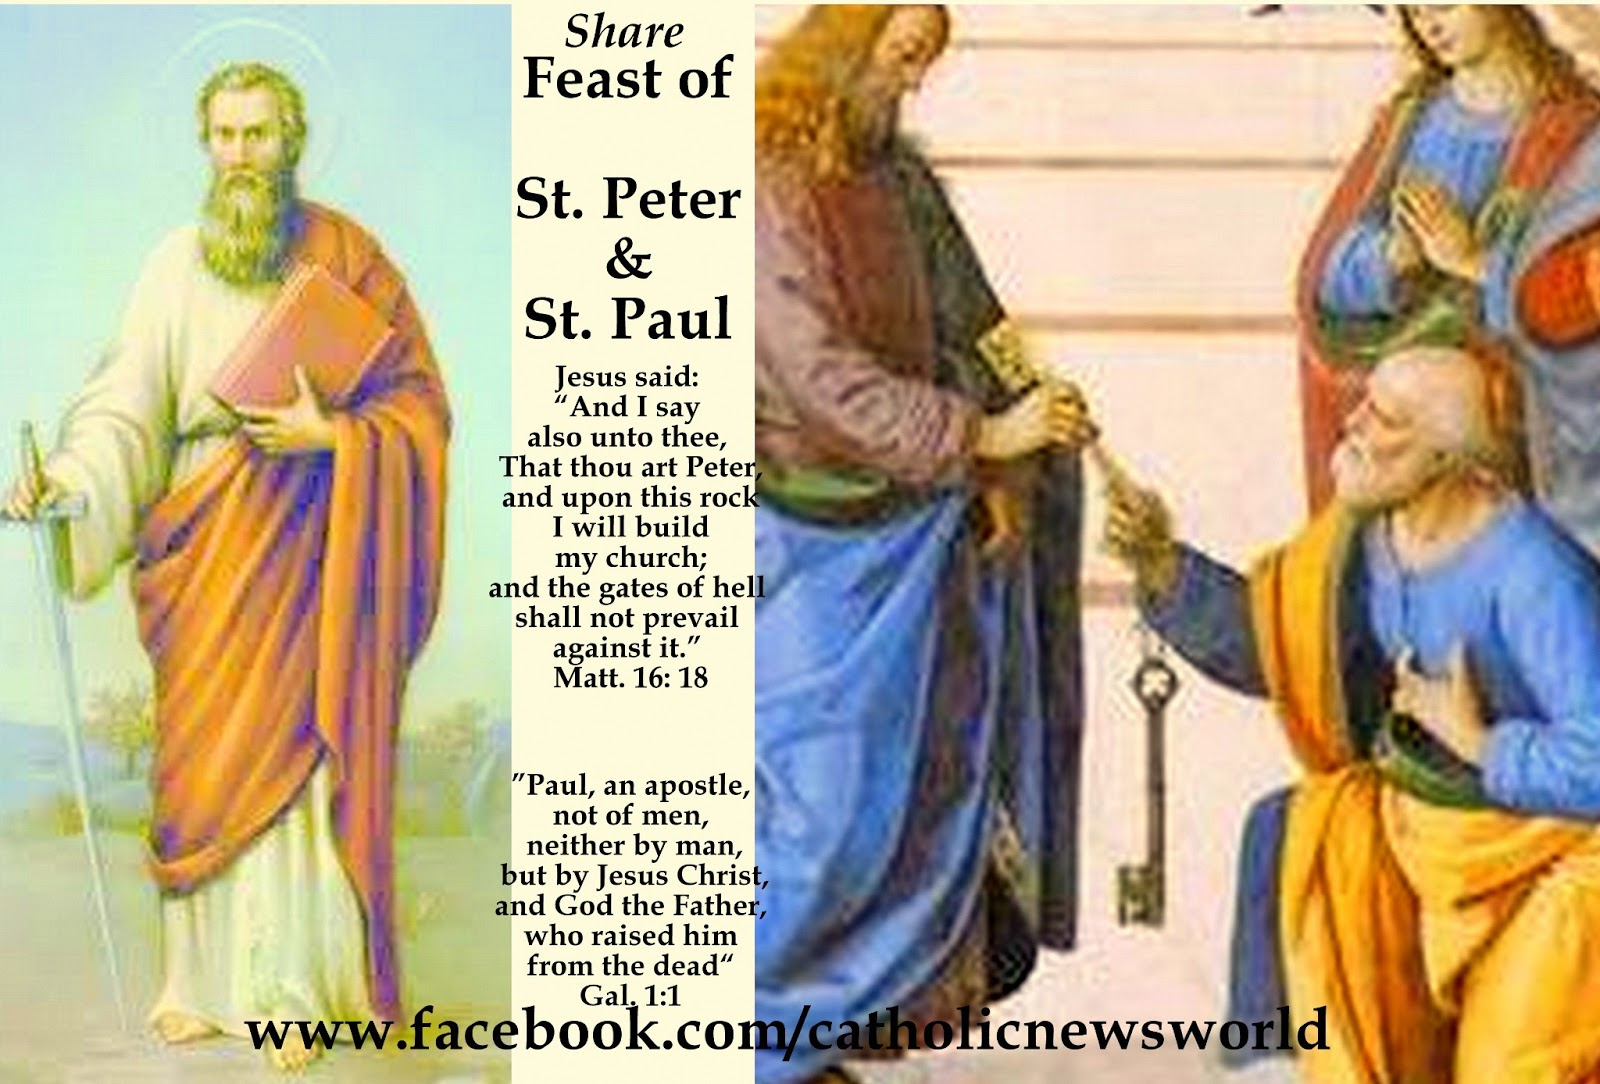 When the feast of Peter and Paul